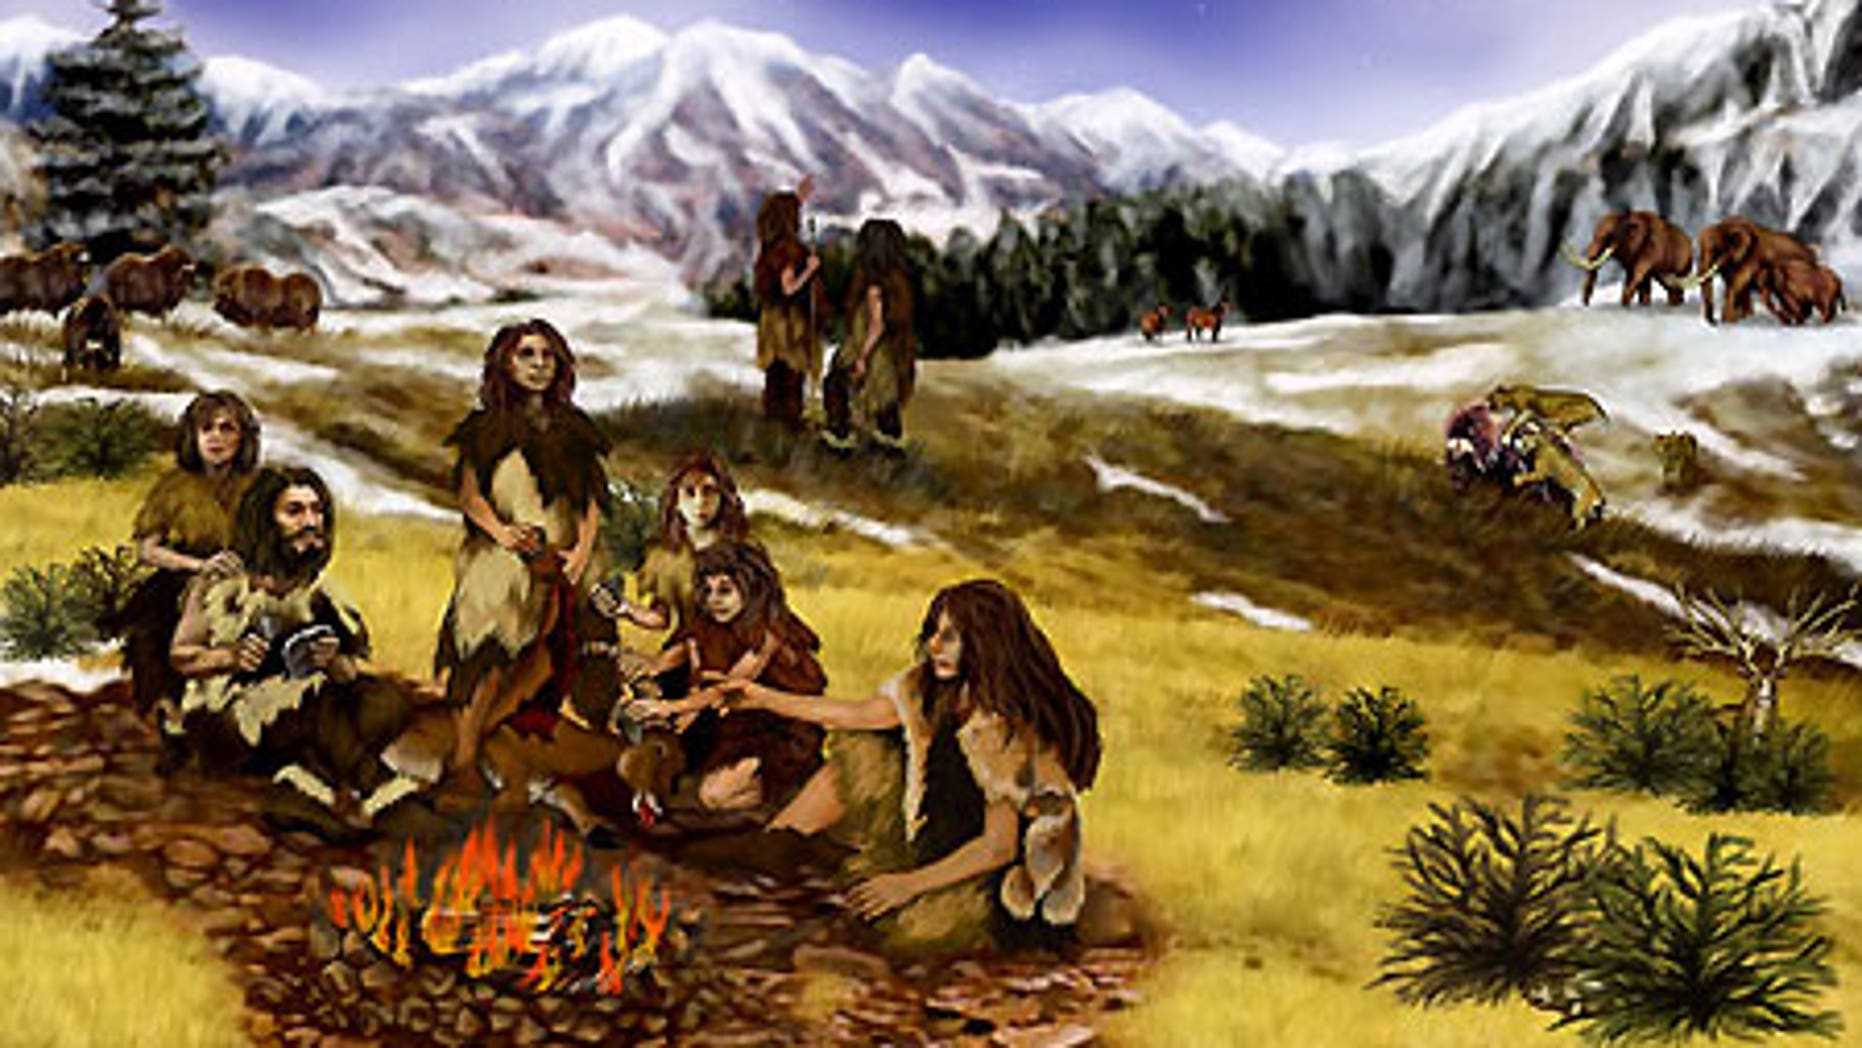 An artist's rendition of a Neanderthal family in Ice Age Europe.